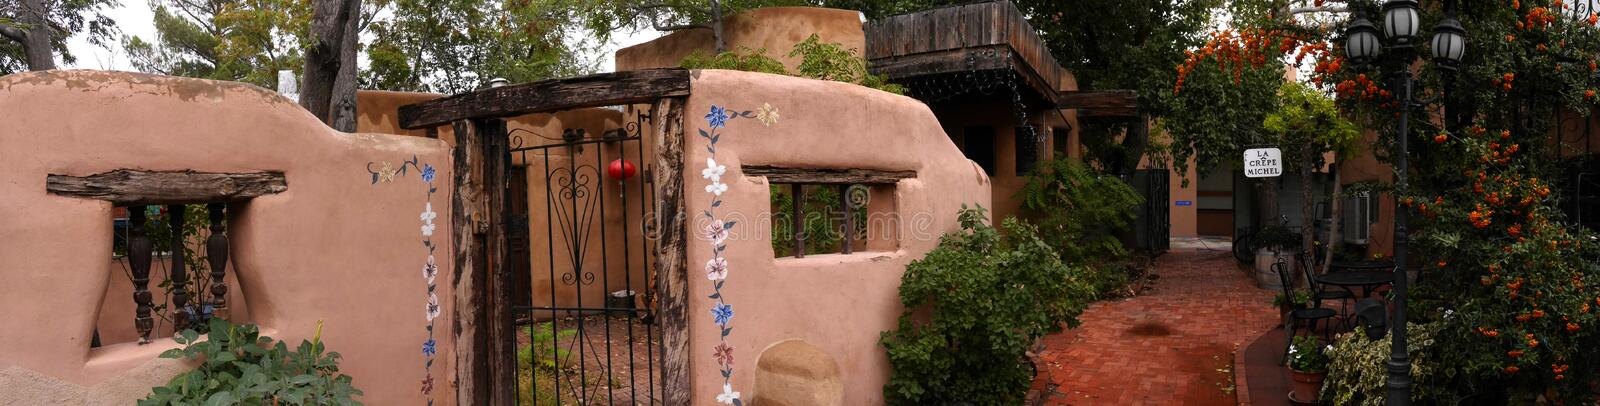 The Creative City of Santa Fe In New Mexico with its multitude of Galleries and Sculptures and adobe buildings. Sante Fe in New Mexico has a very traditional stock images